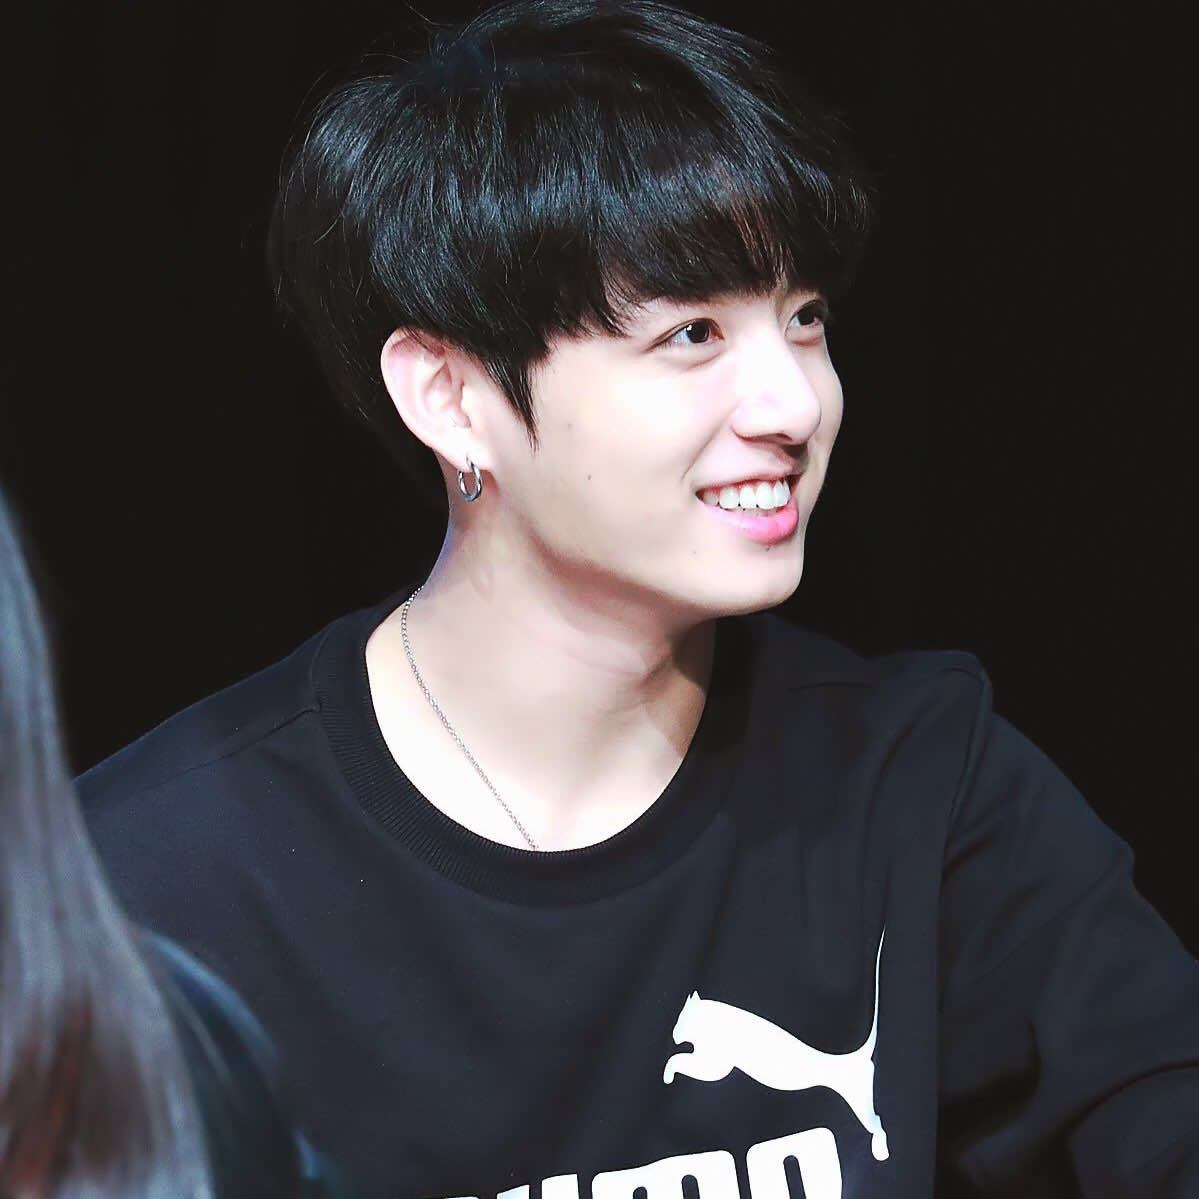 Smart Cute Boy Wallpaper Bts Jungkook Dyed His Hair Black And Fans Think He Looks